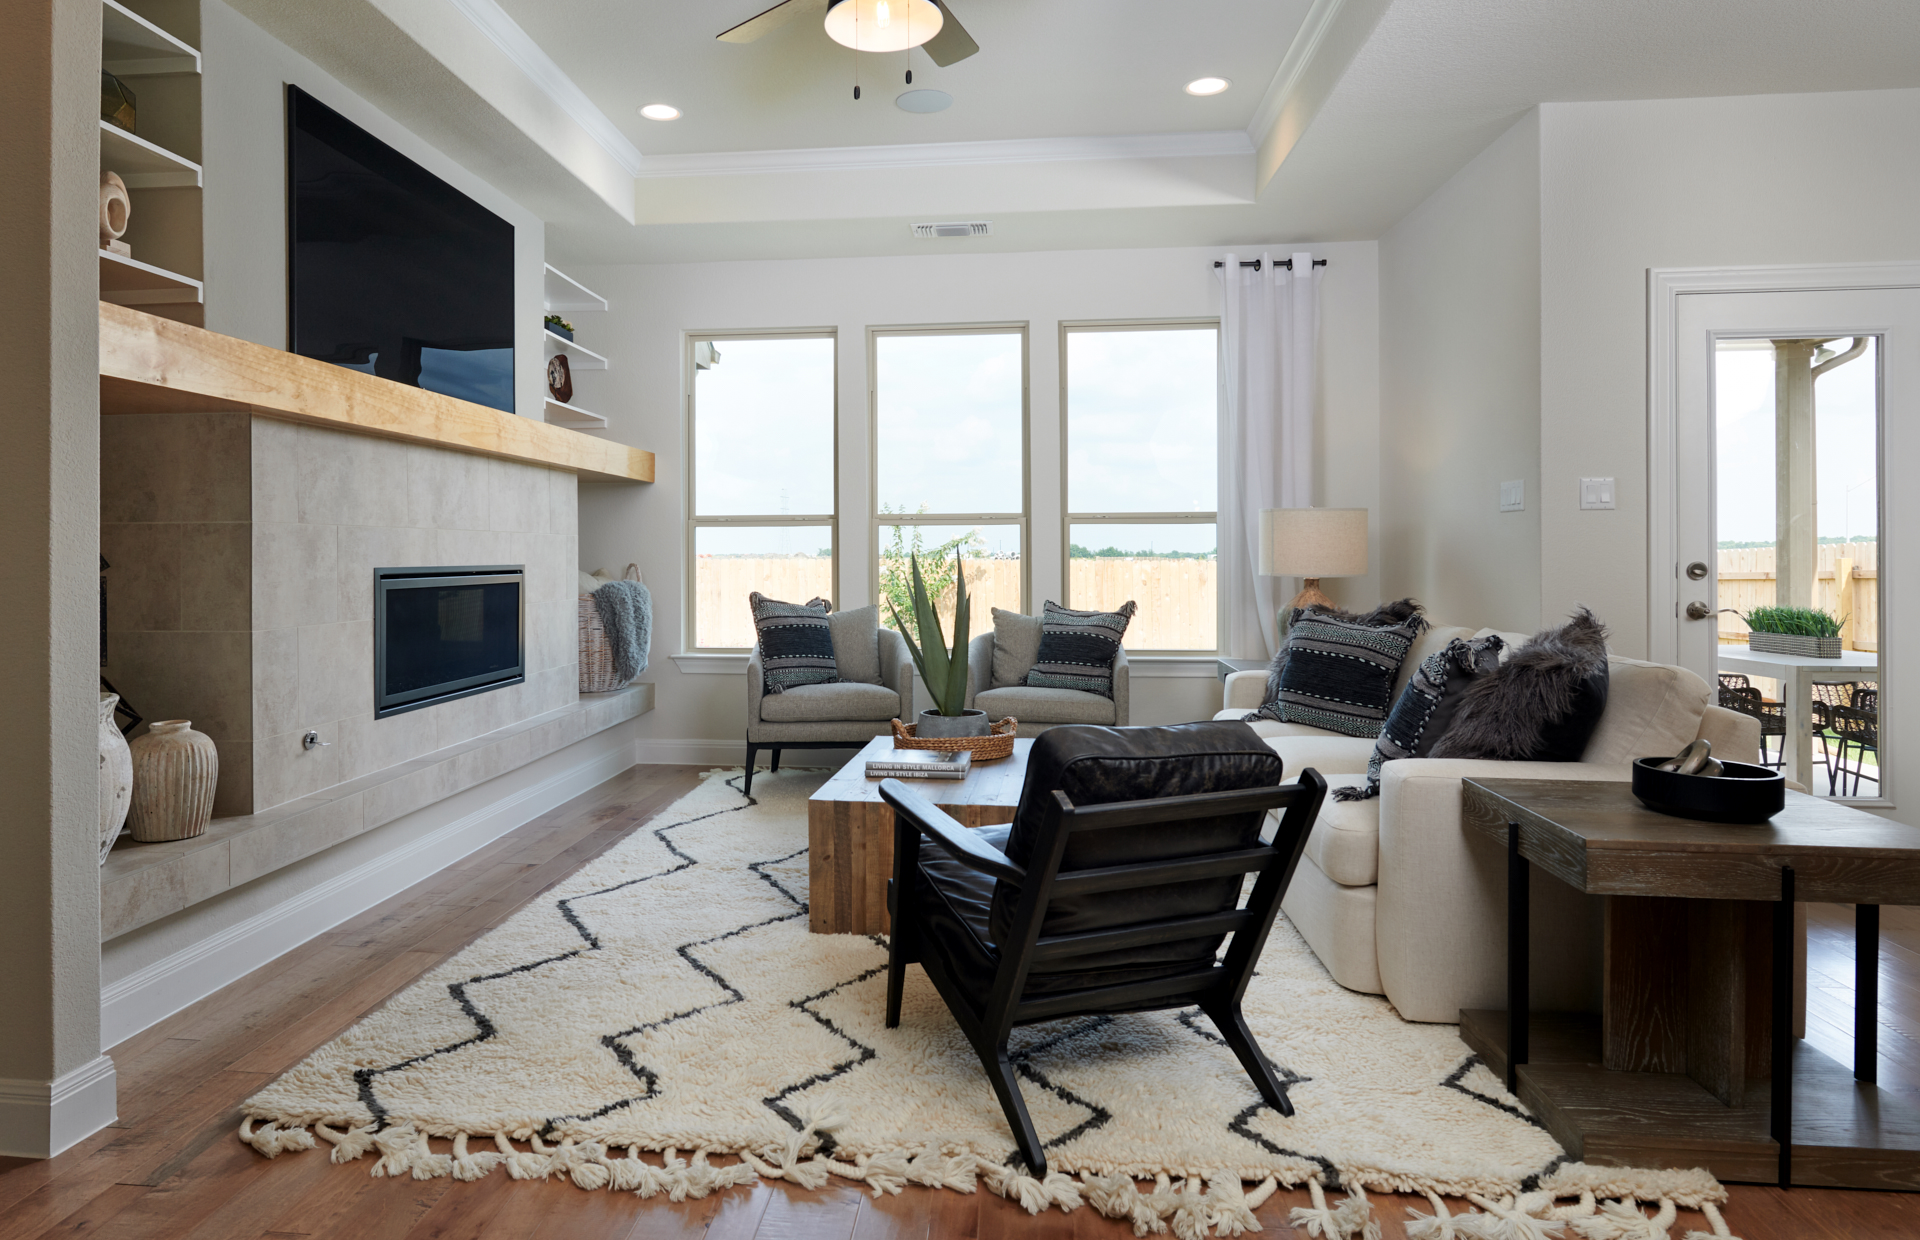 Carmel by Pulte Homes image 1